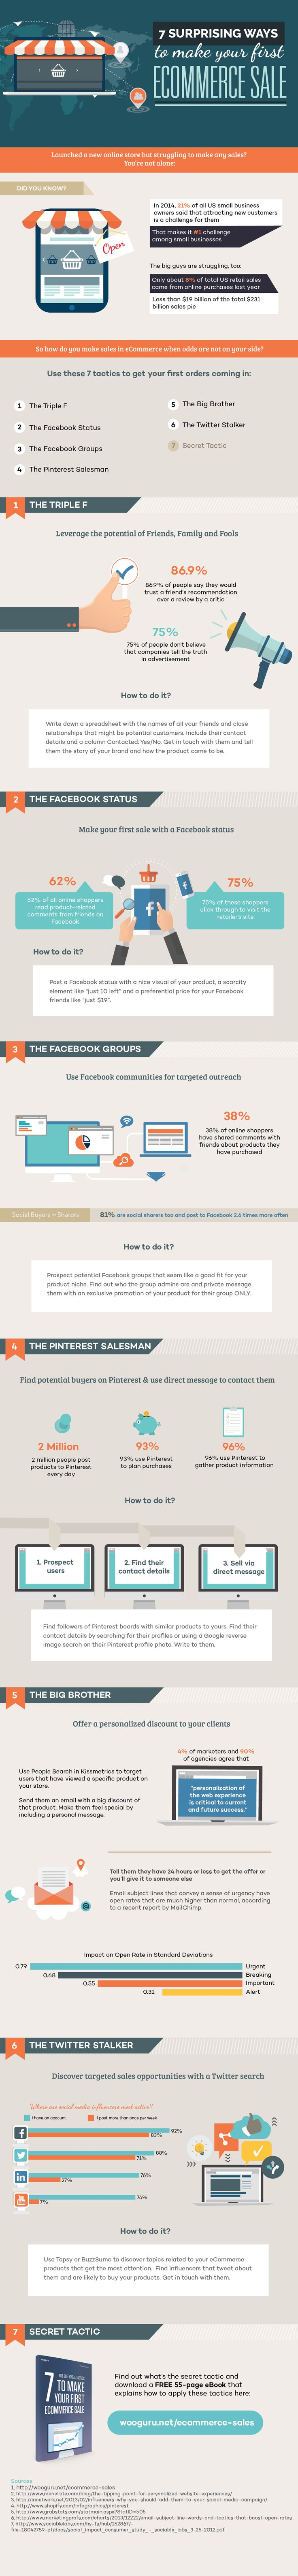 7 Surprising Ways to Make Your First eCommerce Sale #infographic #eCommerce #Marketing #Business